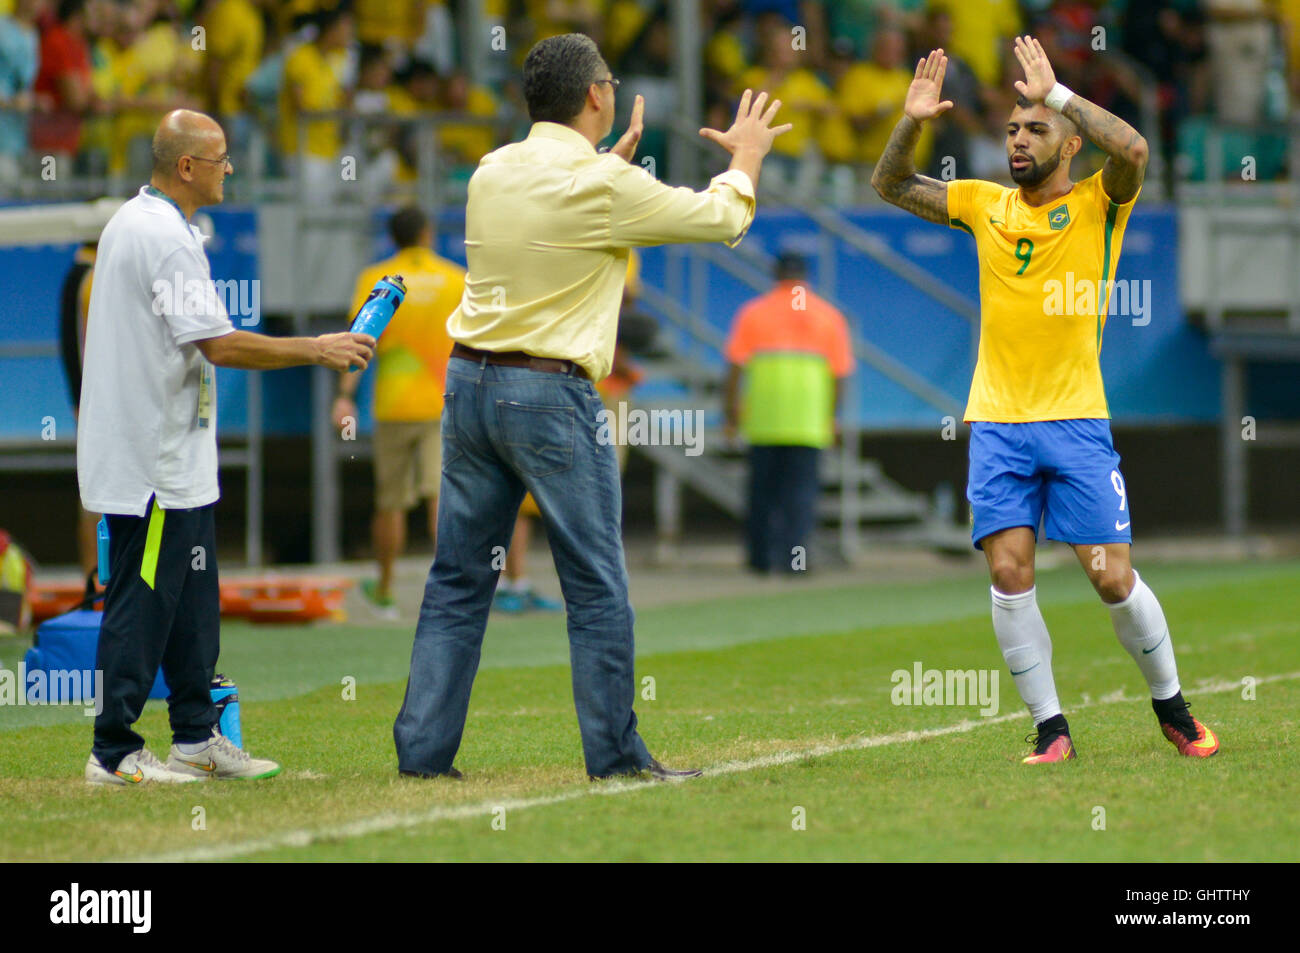 Salvador, Brazil. 10th August, 2016. OLYMPICS 2016 FOOTBALL SALVADOR - Match between Brazil (BRA) and Denmark (DIN) Stock Photo